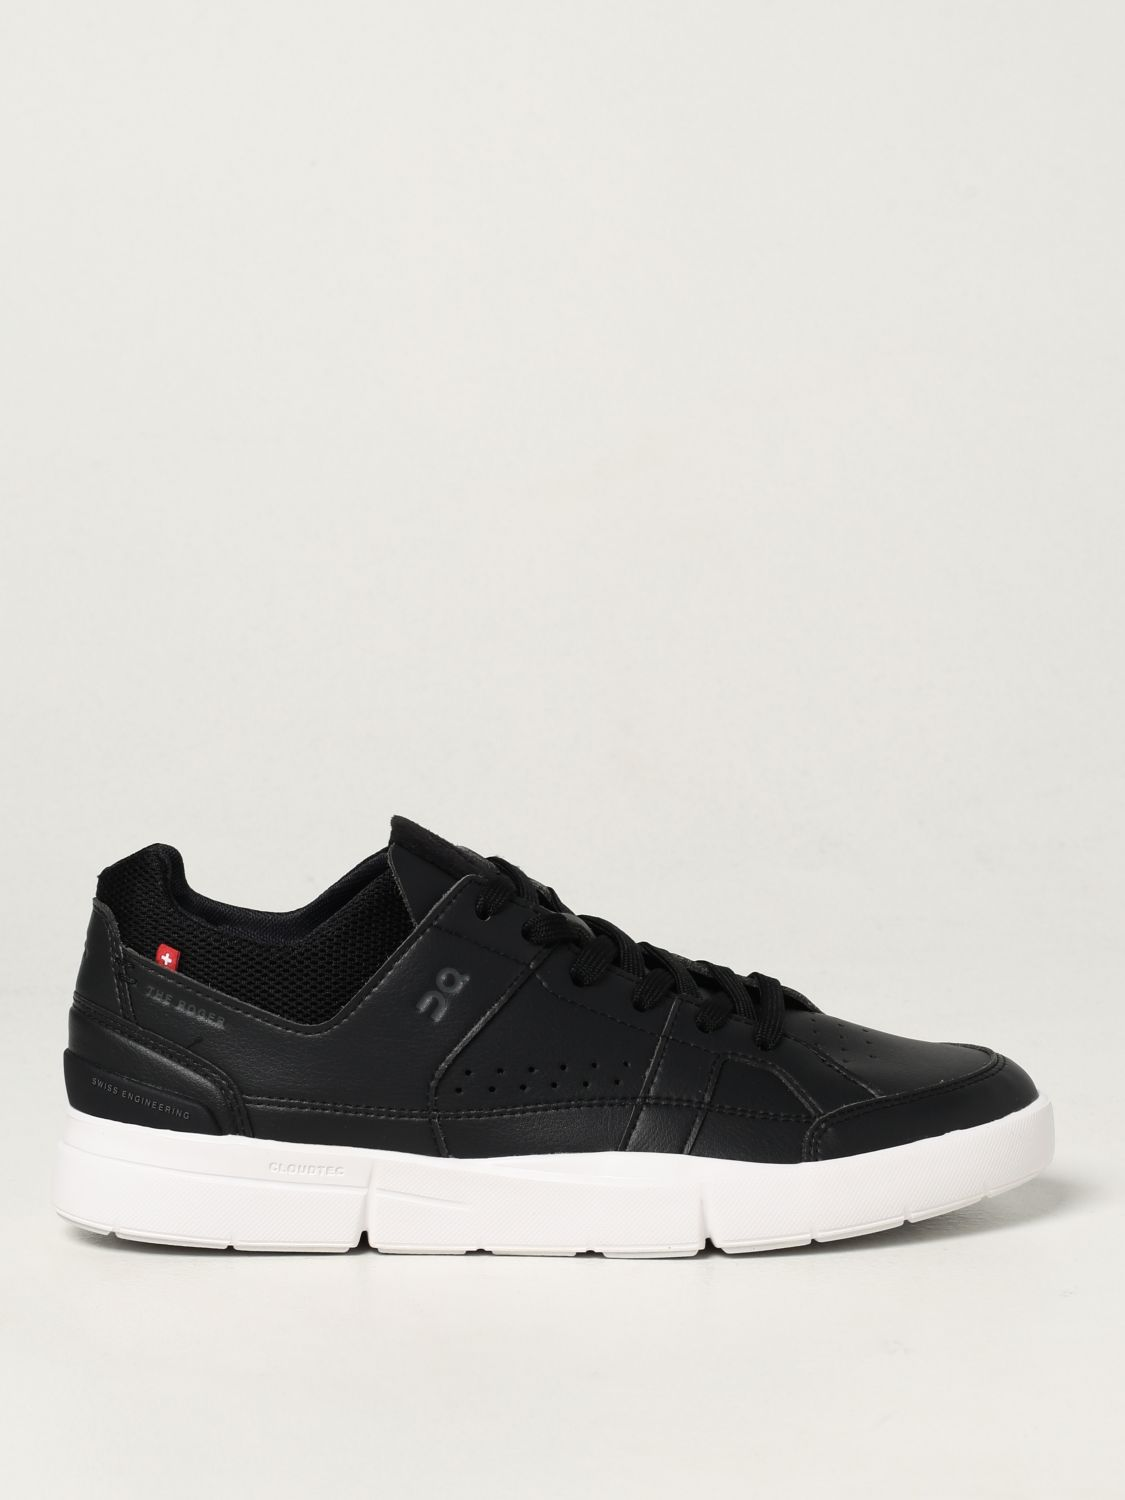 Sneakers The Roger: Sneakers Clubhouse in pelle ecologica e mesh nero 1